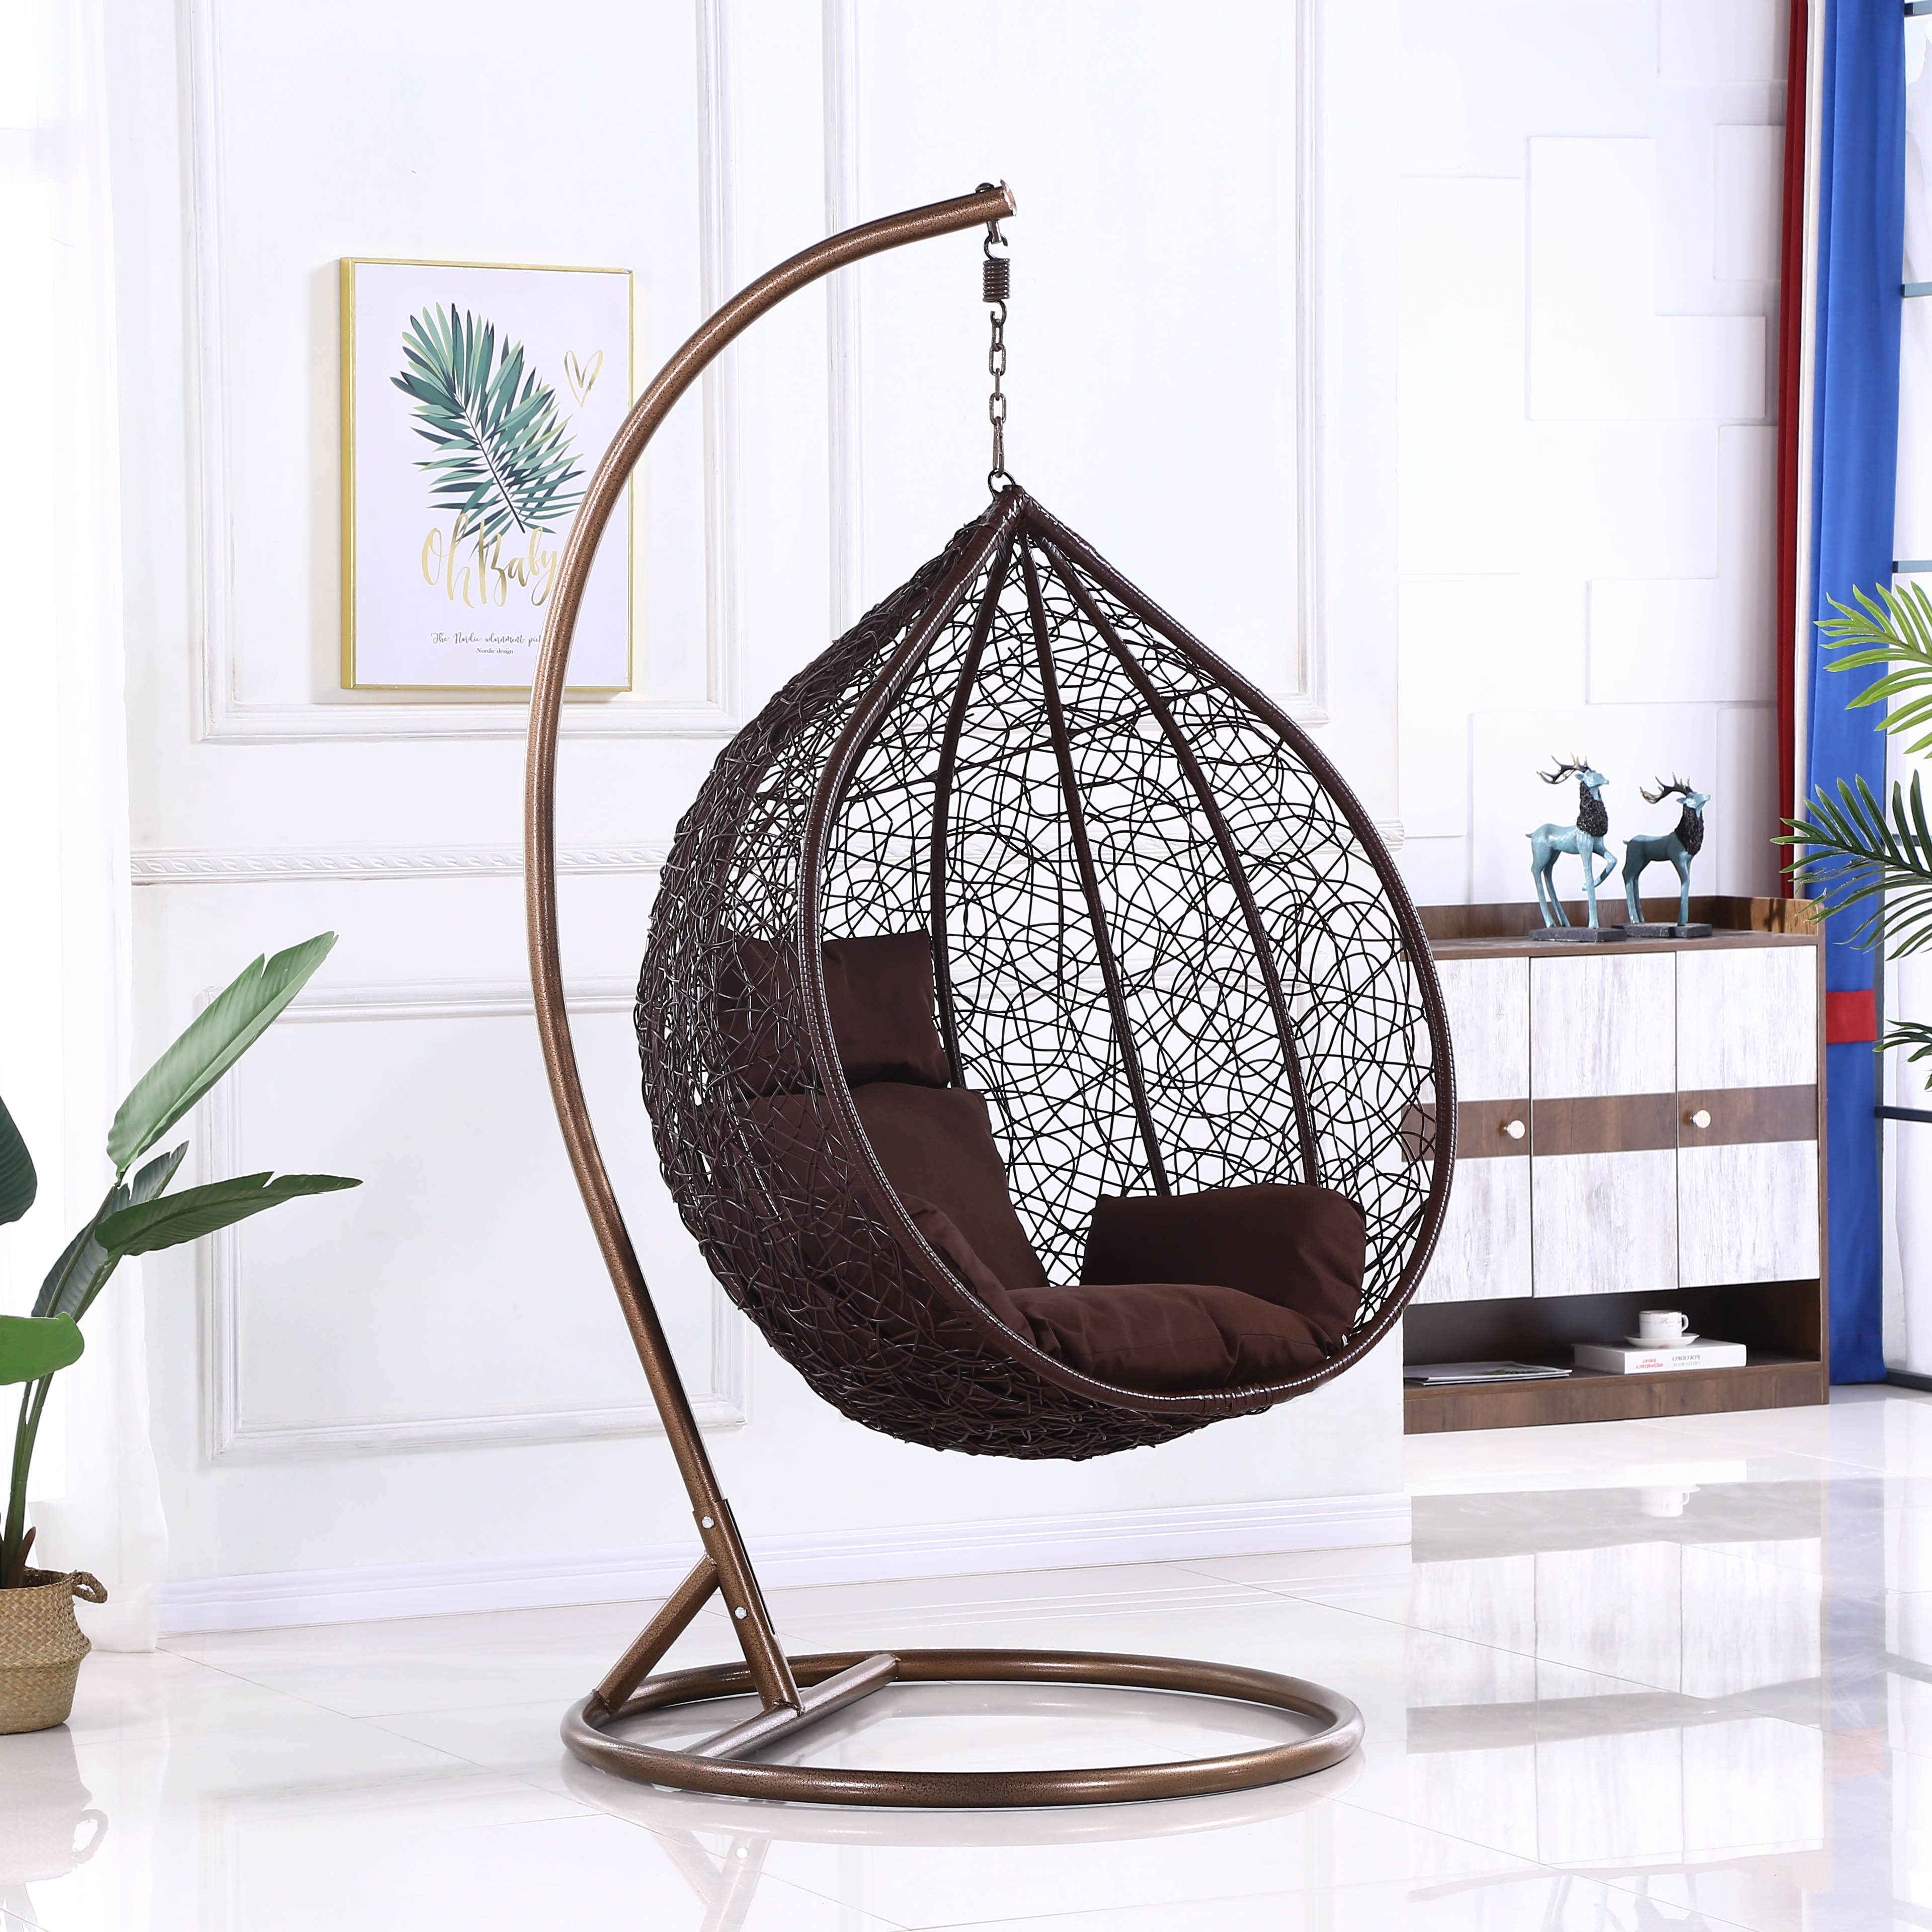 Hot Sell Outdoor Hanging Rattan Egg Chair Leisure Wicker Patio Swing Chair